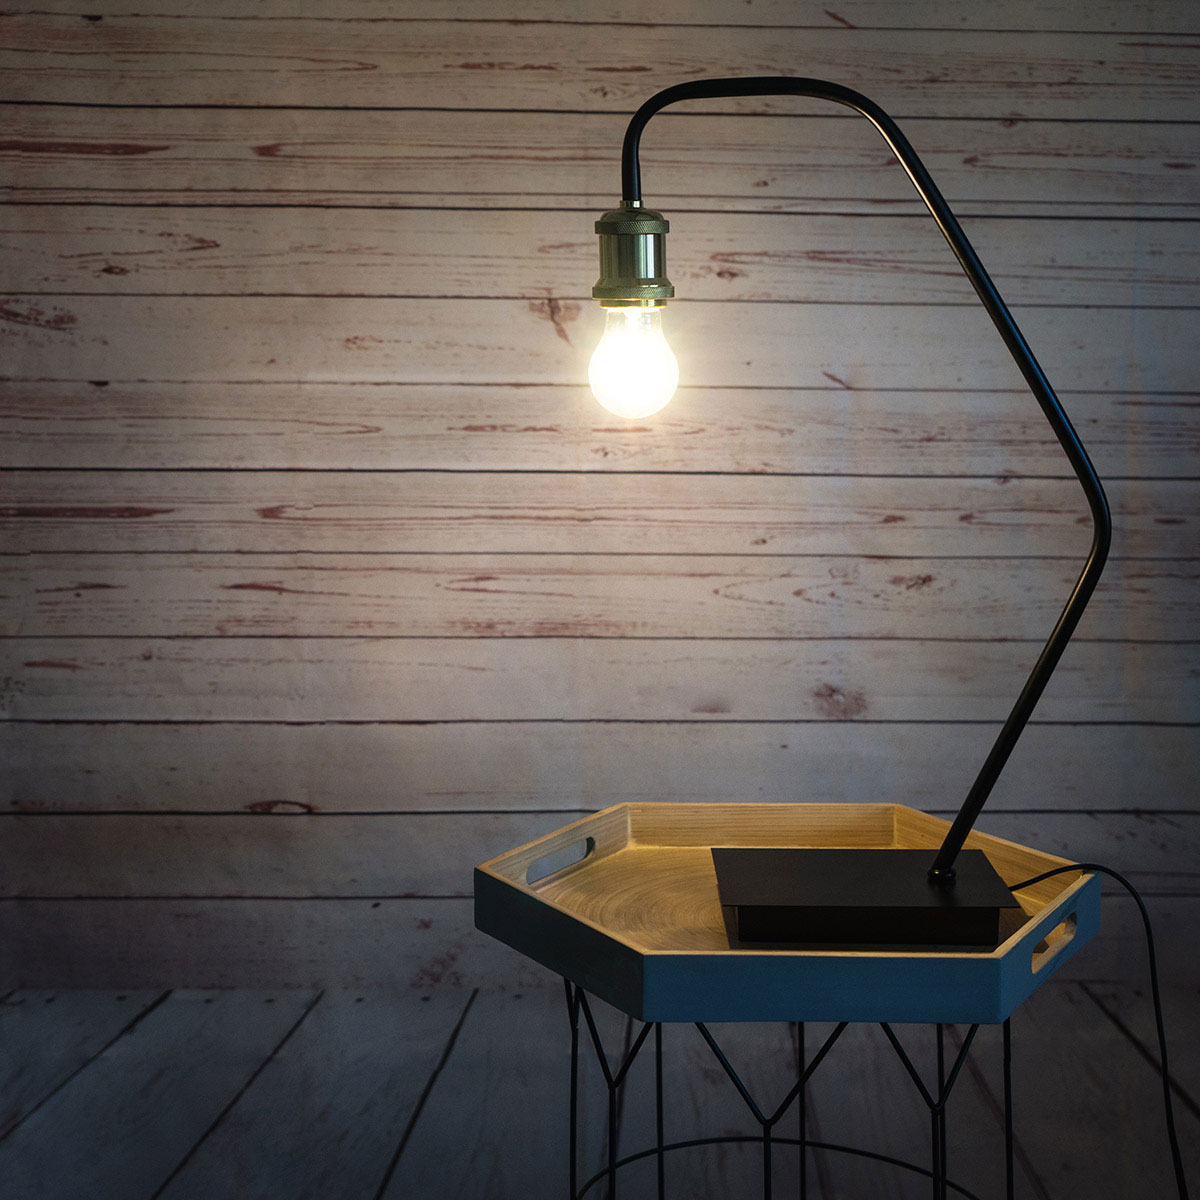 Table lamp Bulb metal, color gold and black, retro air, 54x18x13 cm